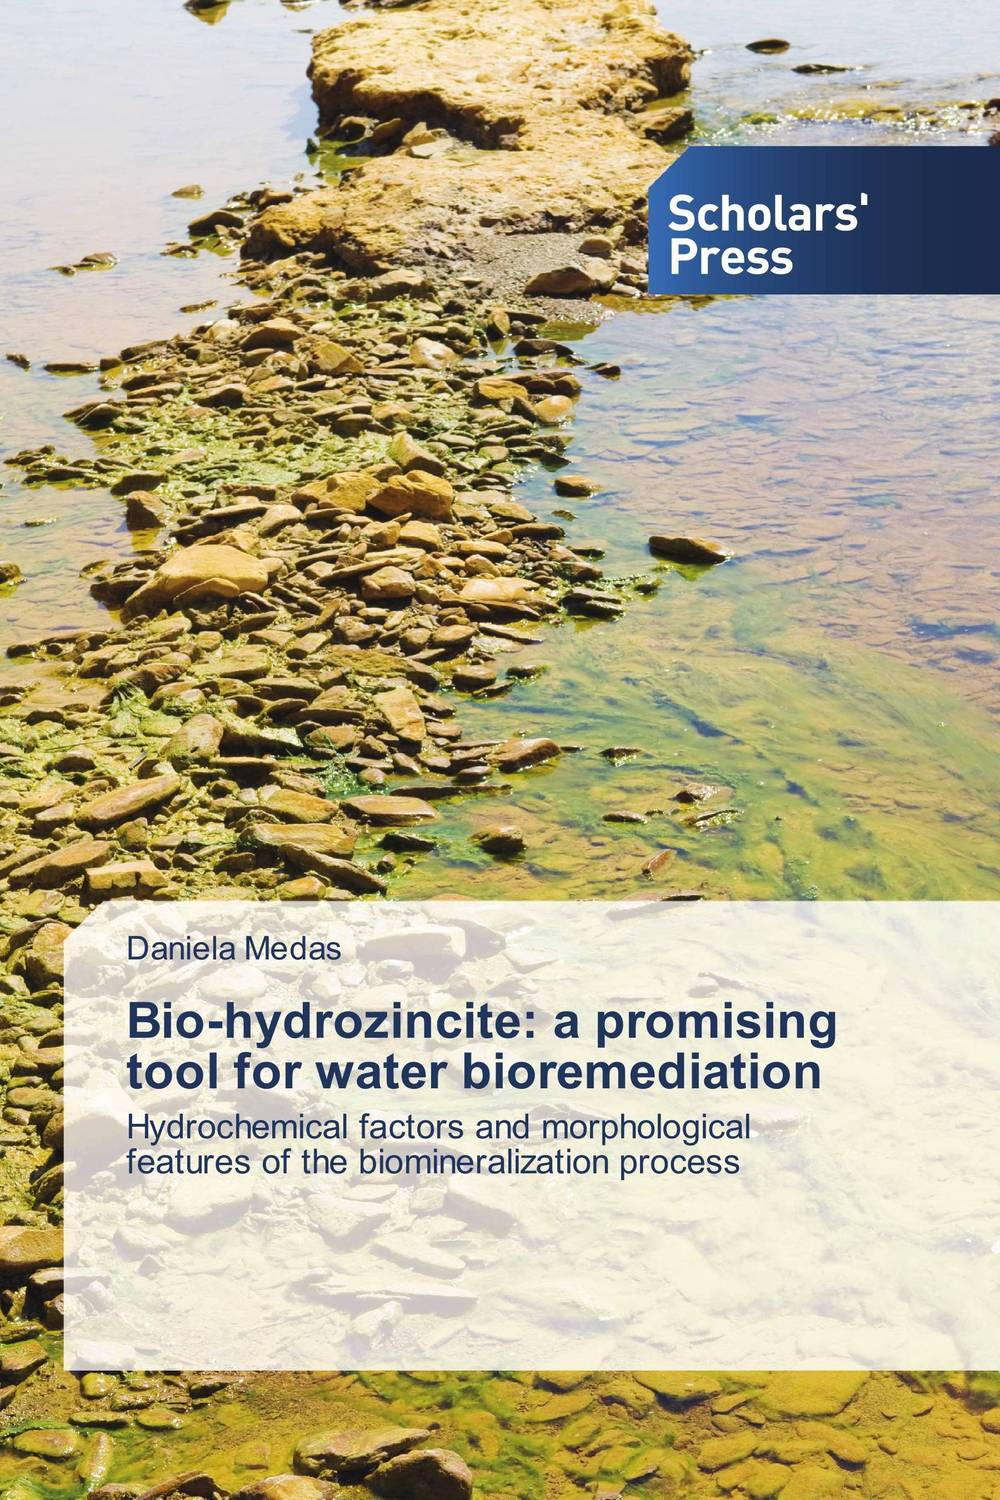 Bio-hydrozincite: a promising tool for water bioremediation thermo operated water valves can be used in food processing equipments biomass boilers and hydraulic systems